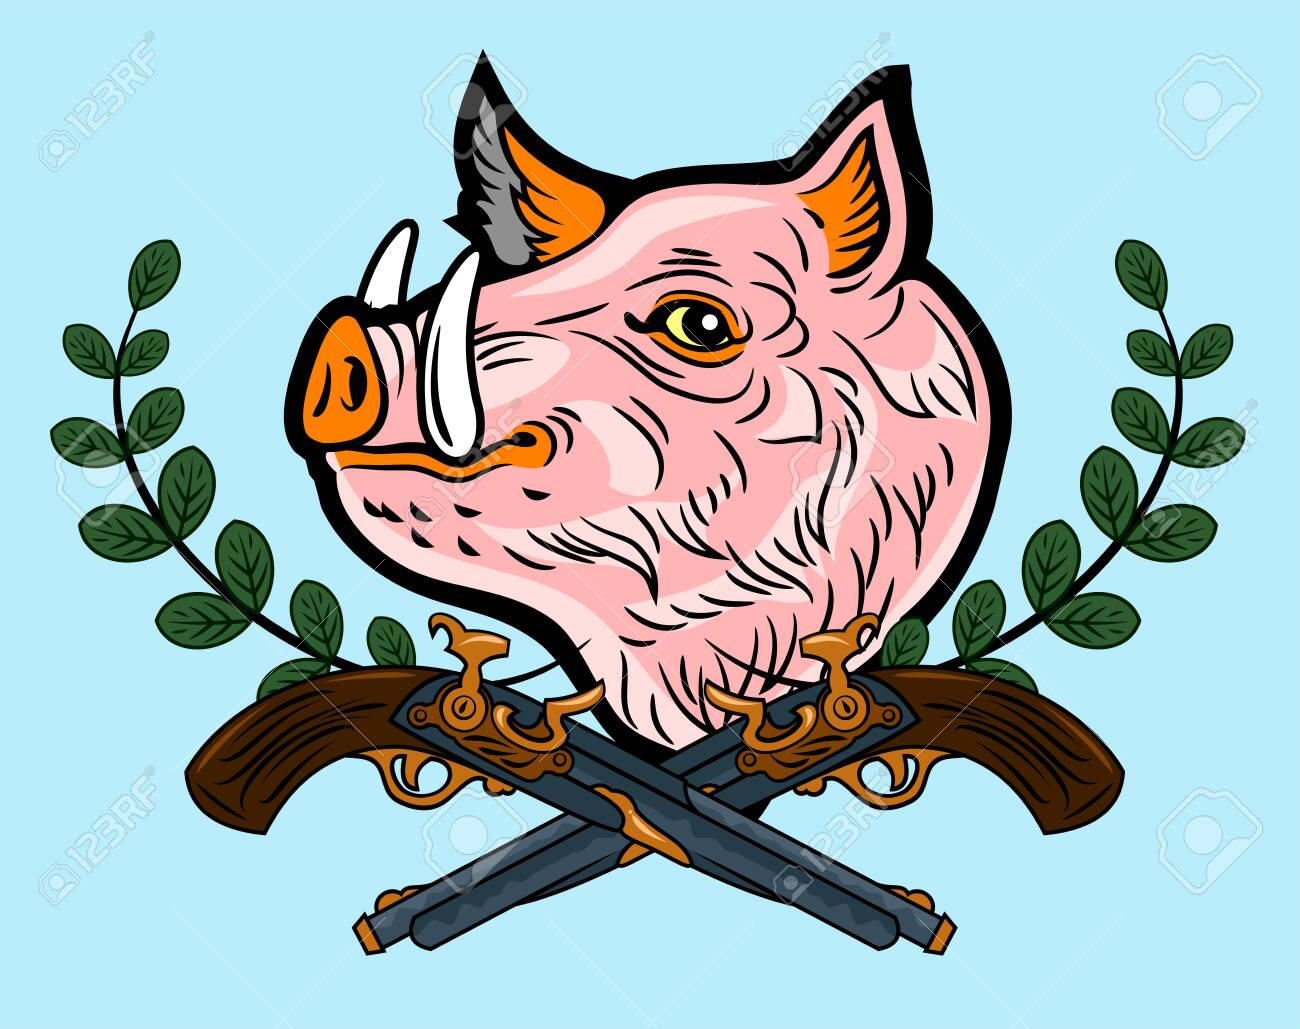 Cute, good-natured pink wild boar old-school style tattoo - 130854591